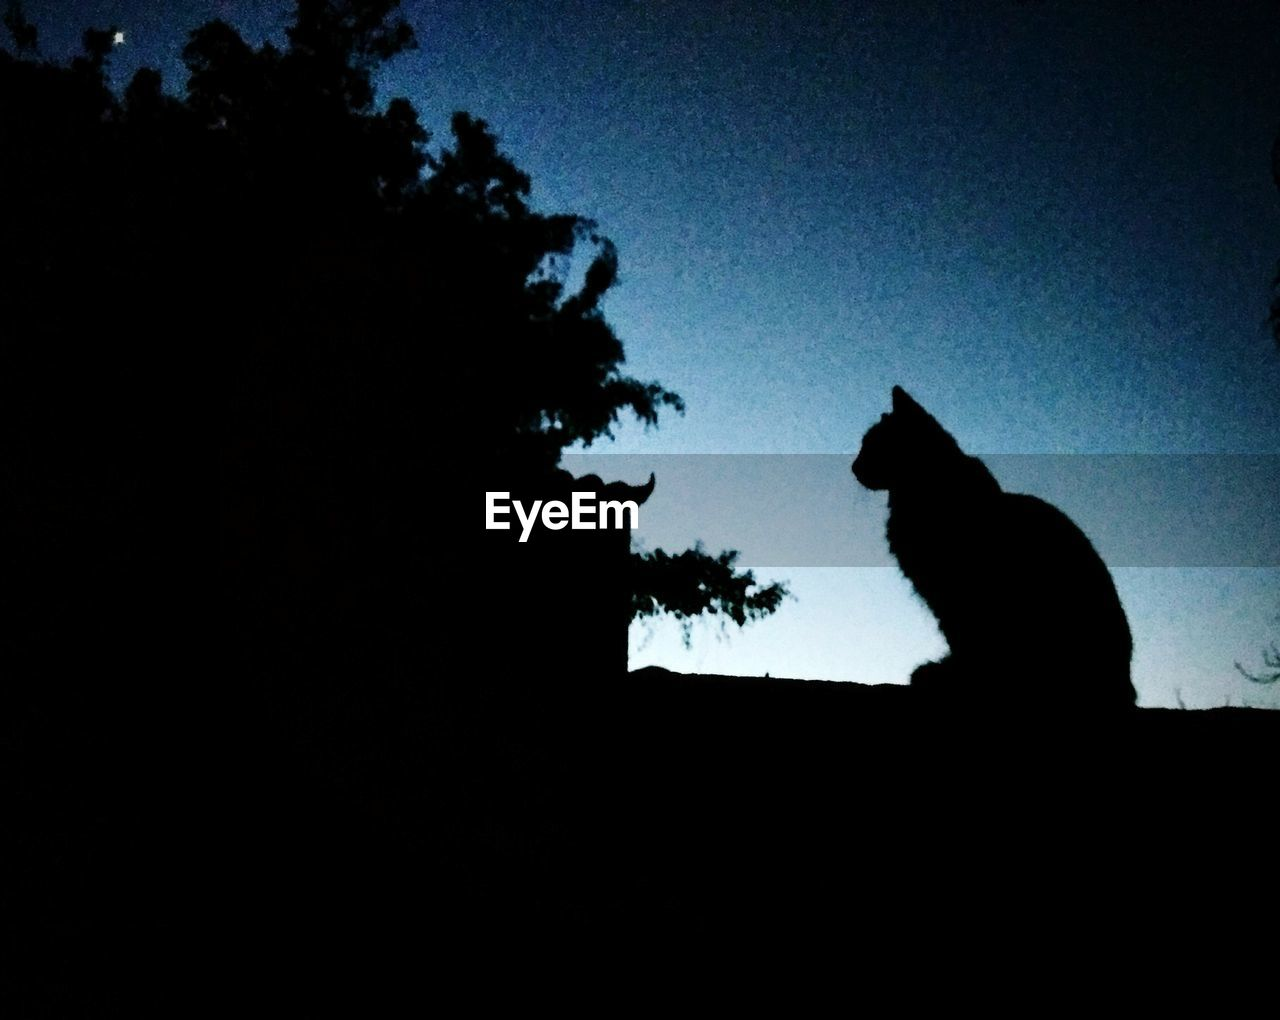 silhouette, sky, mammal, animal, animal themes, copy space, nature, one animal, no people, plant, vertebrate, tree, domestic, domestic animals, clear sky, pets, dusk, low angle view, cat, dark, outdoors